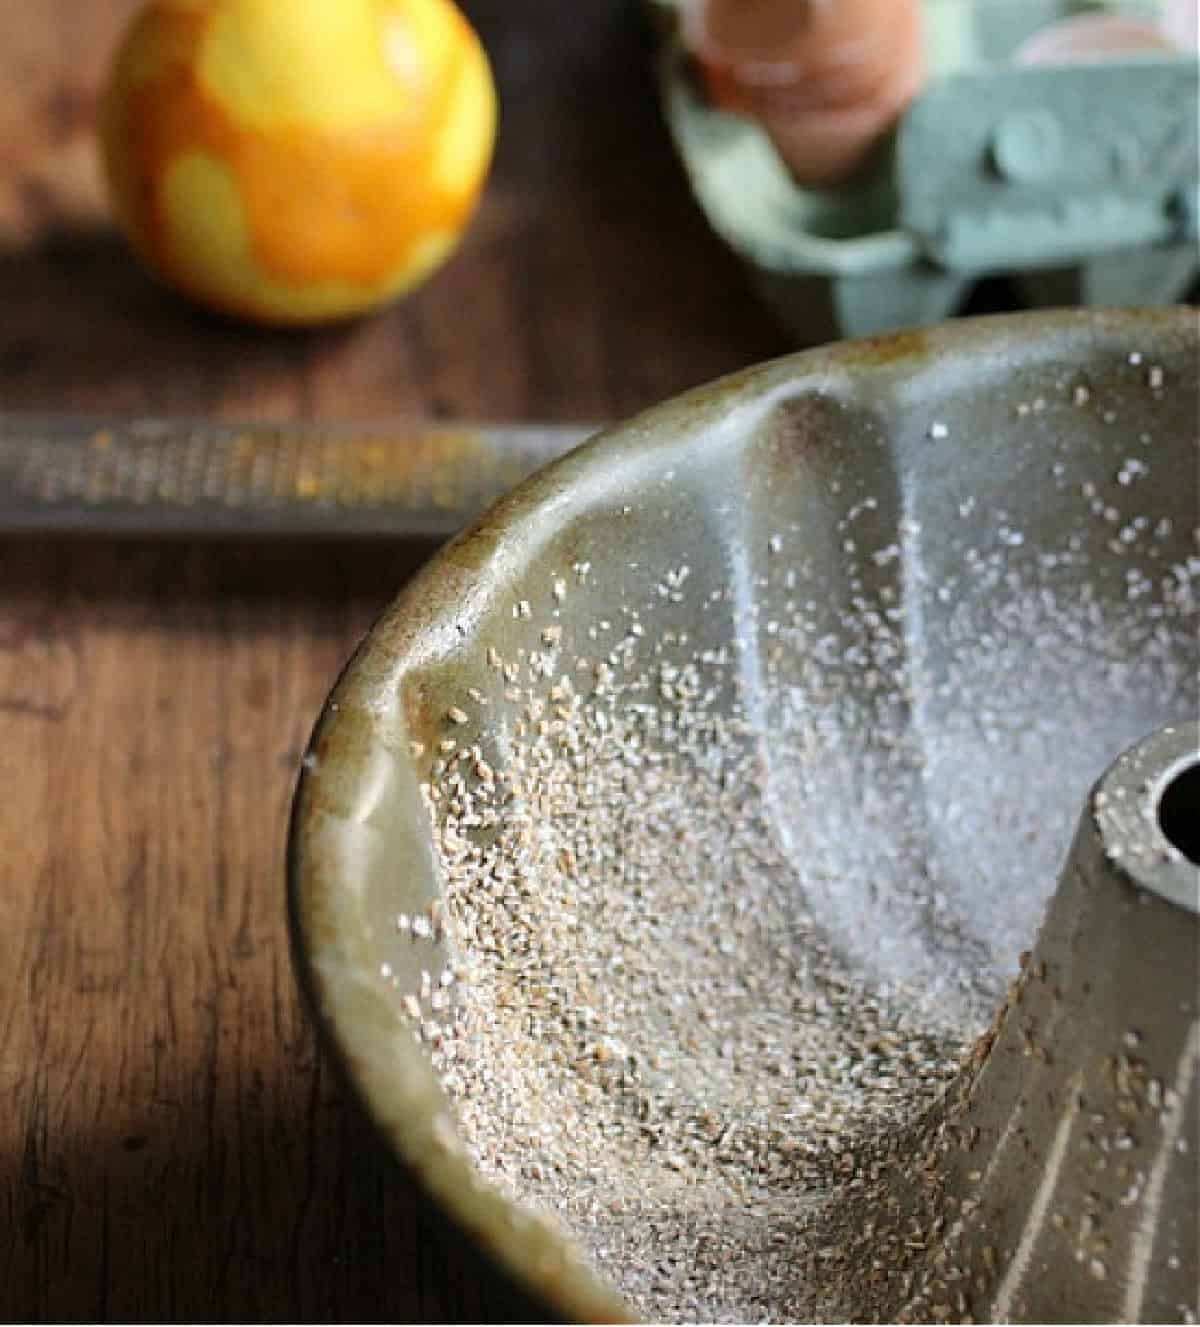 Partial view of bundt pan, an orange and egg container on wooden table